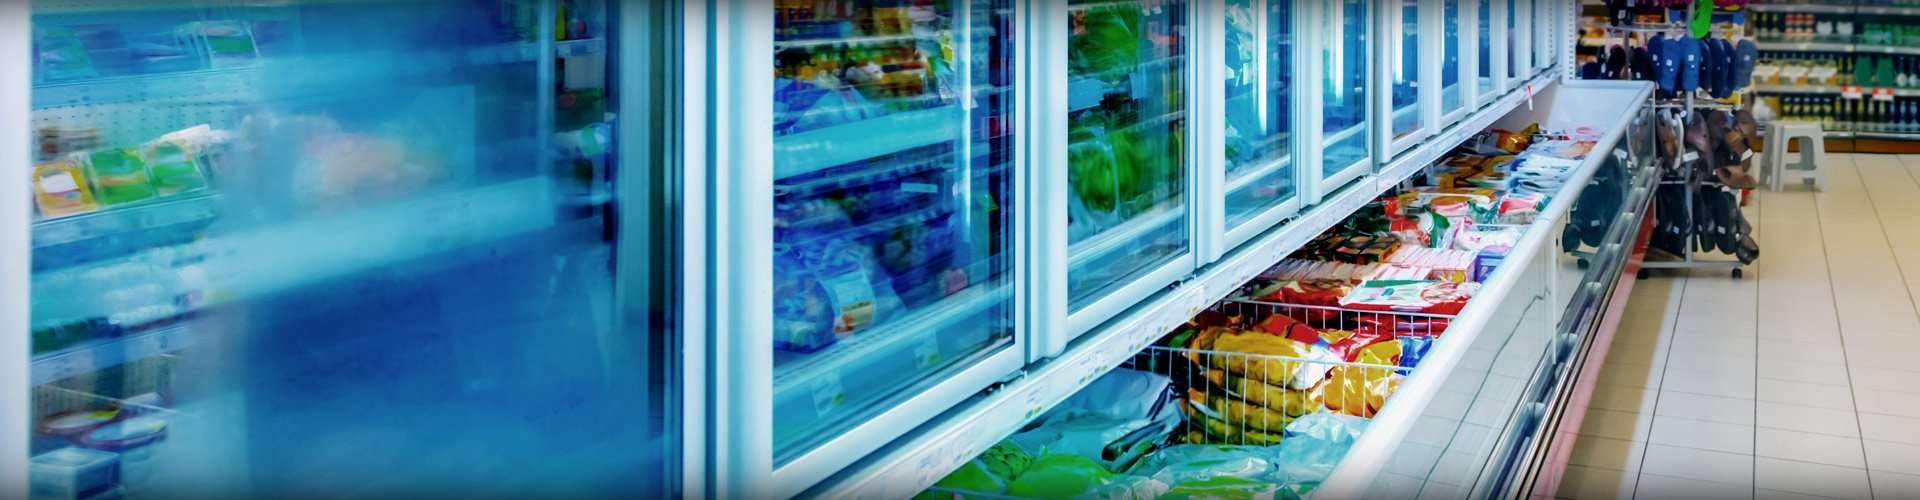 commercial refrigeration in store